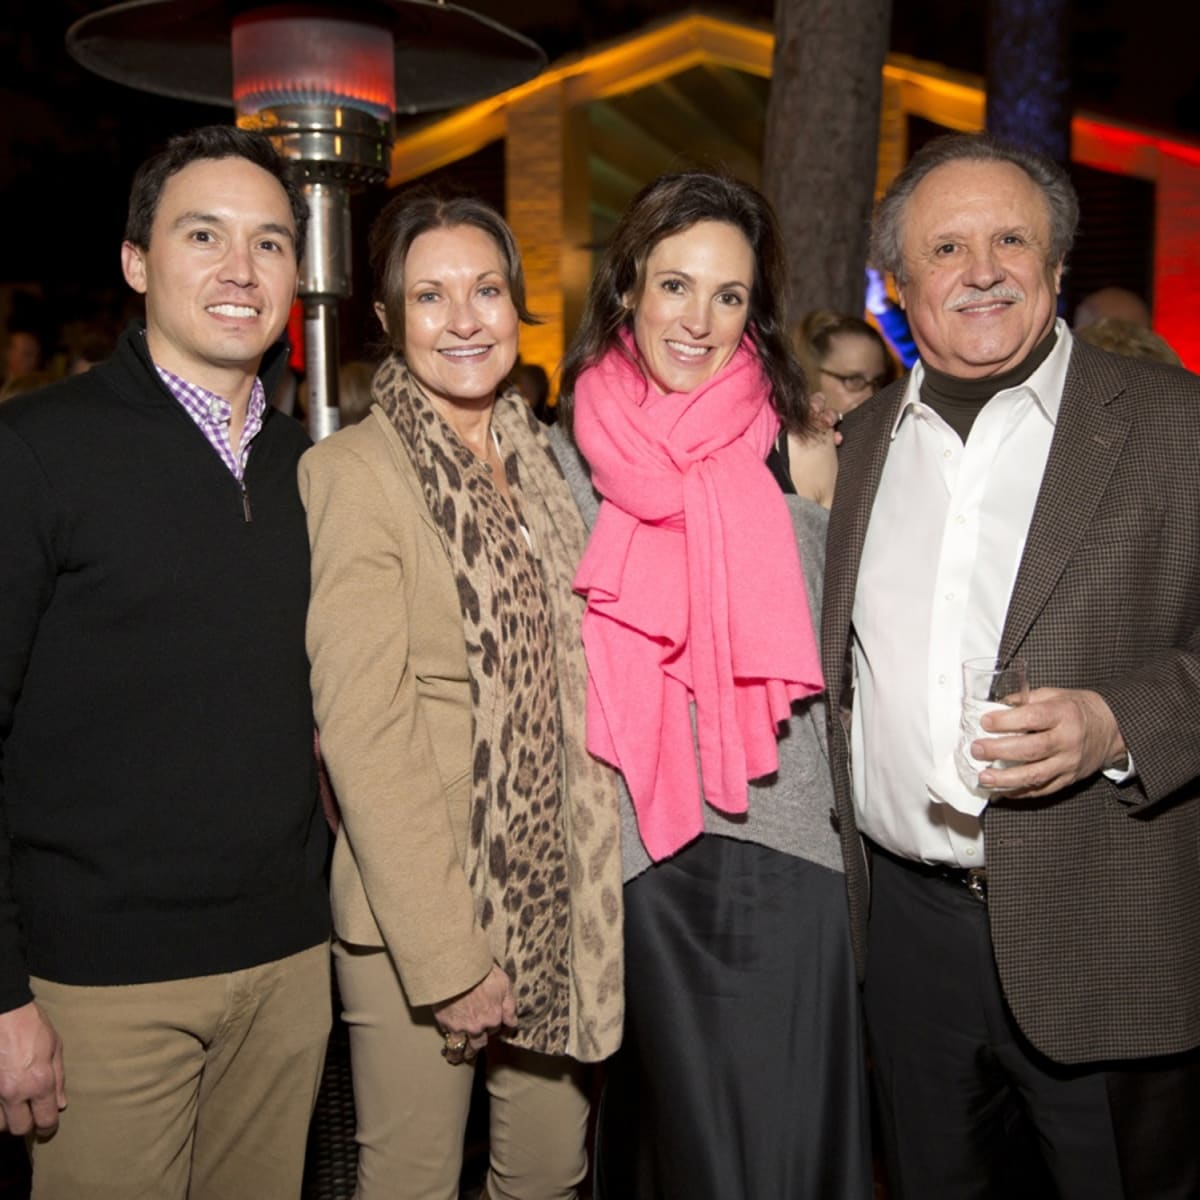 Houston, Memorial Park Conservancy Picnic for the Park, February 2018, Alex Mousoudakis, Margaret Morris, Lindsay Mousoudakis, Ben Morris